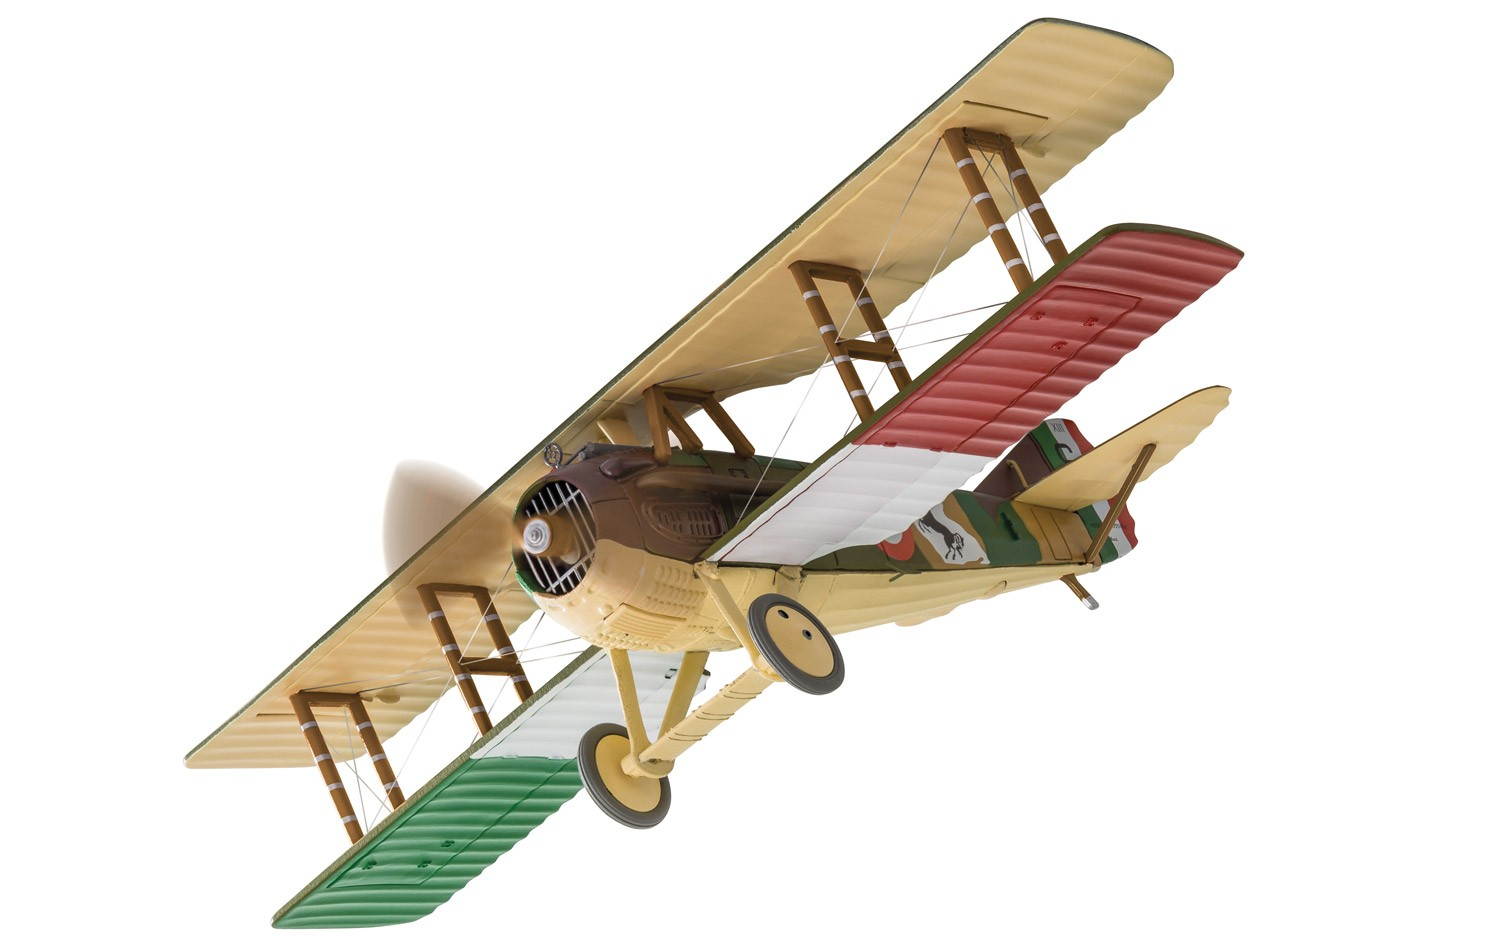 AA37907 SPAD XIII, S2445, Major Francesco Baracca, 148 Scale